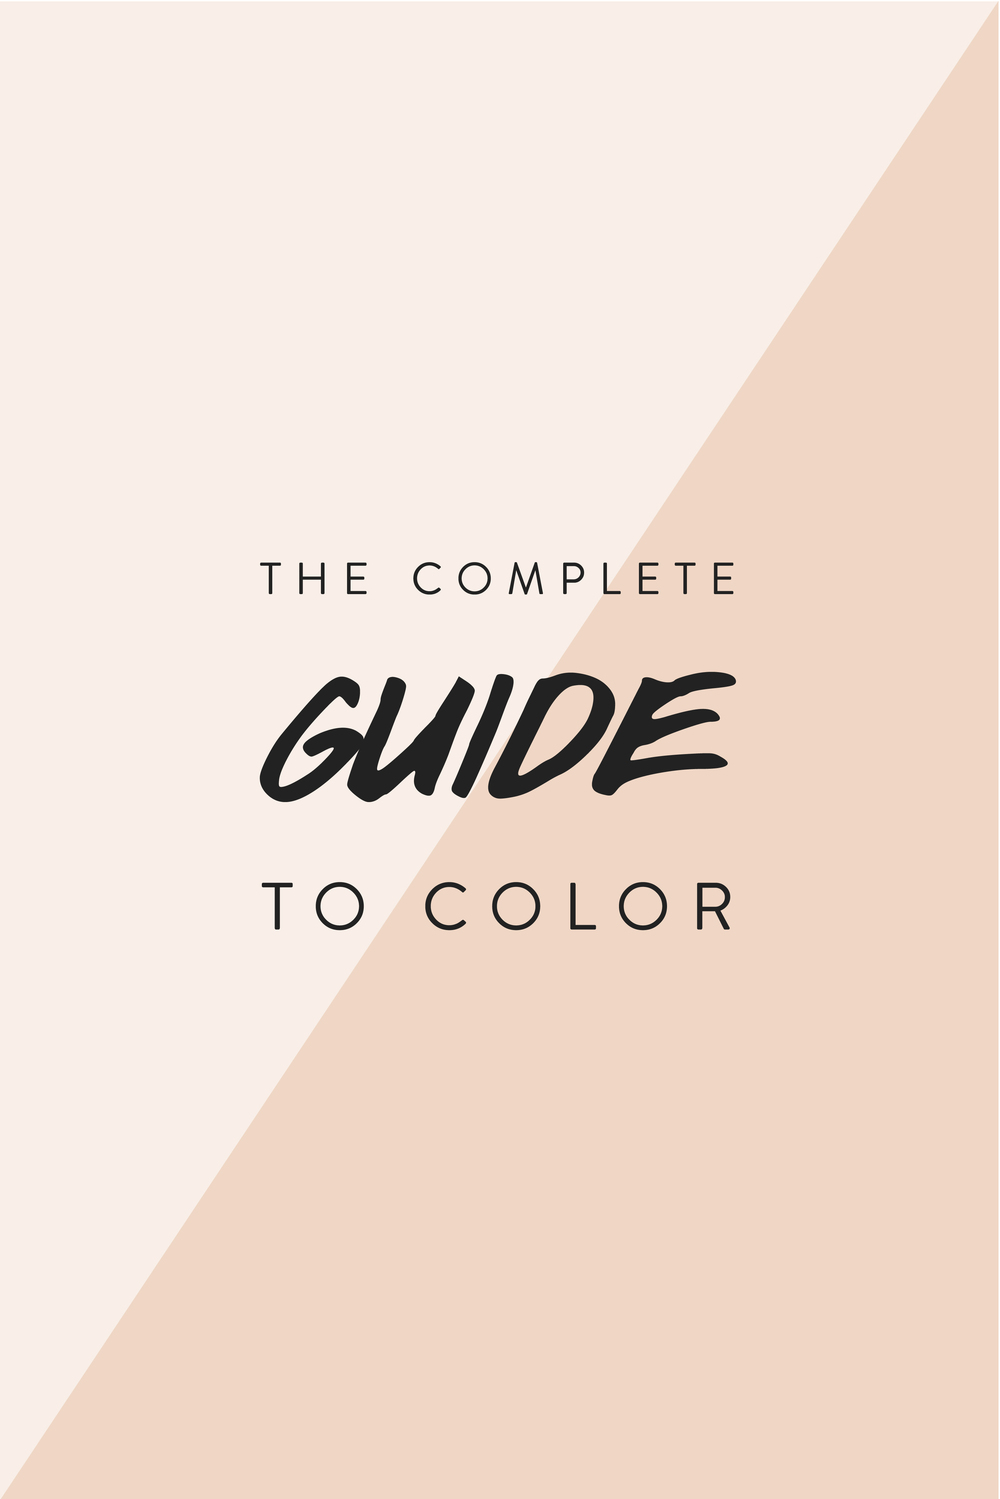 The Complete Guide to Color